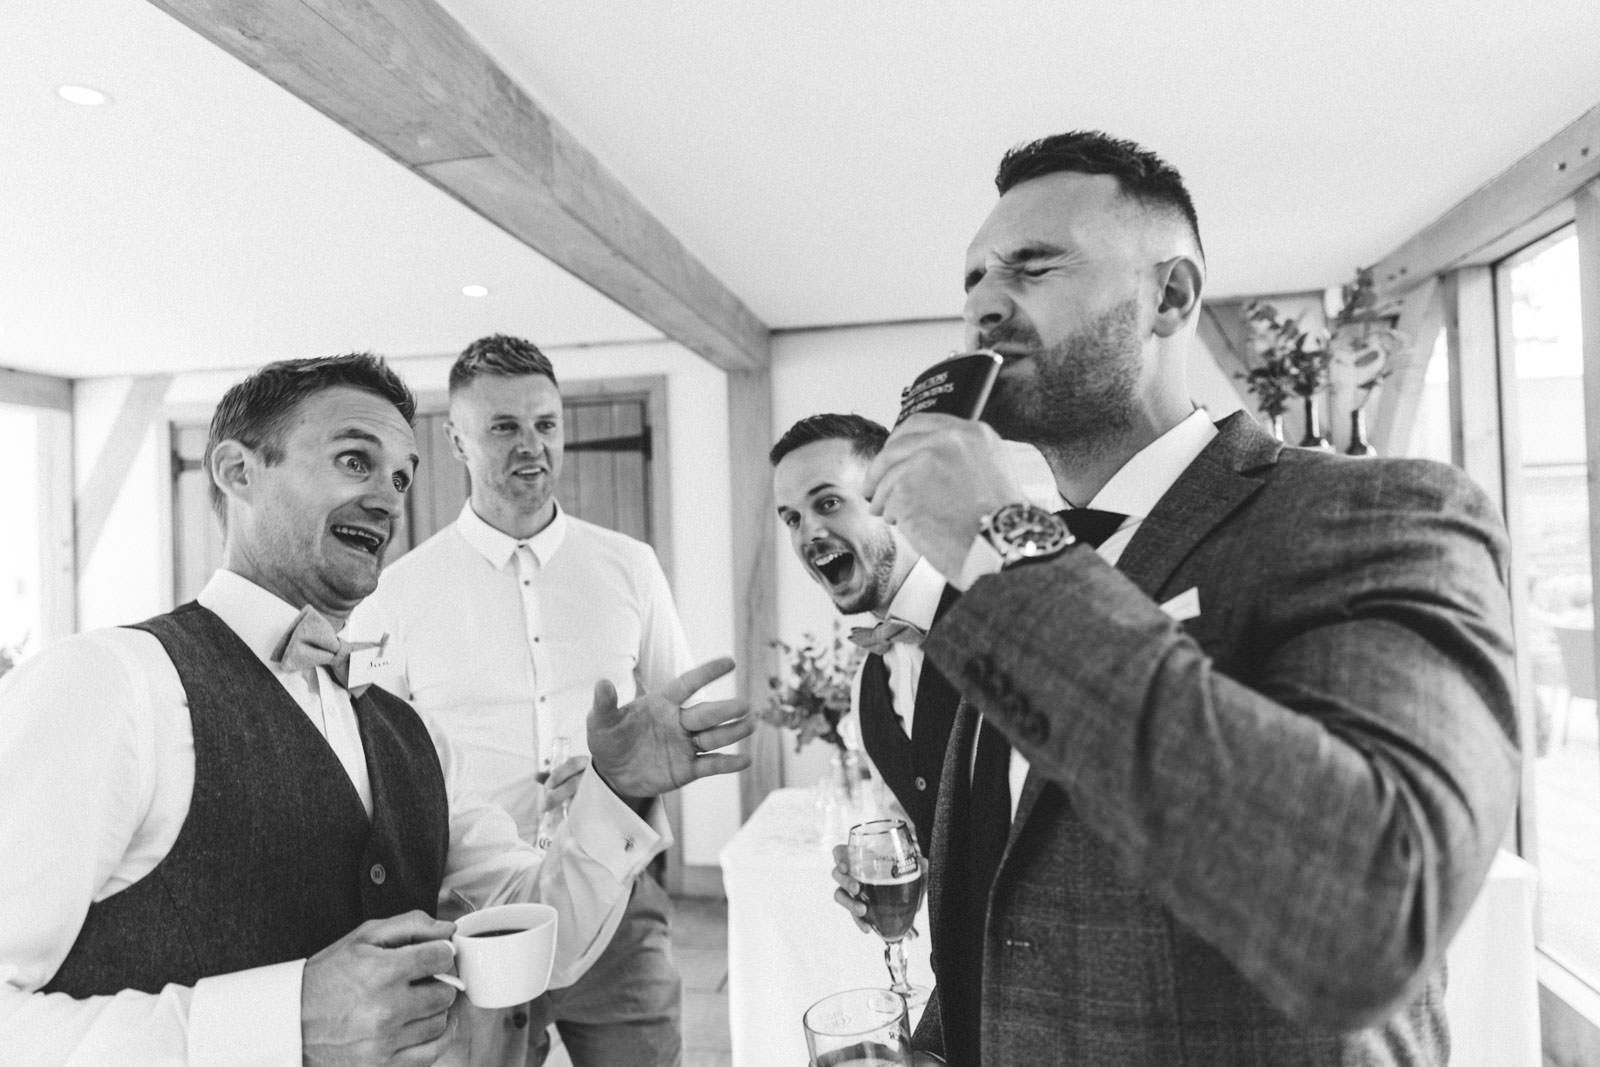 Wedding guest playing silly gaes and drinking a strong alcoholic drink